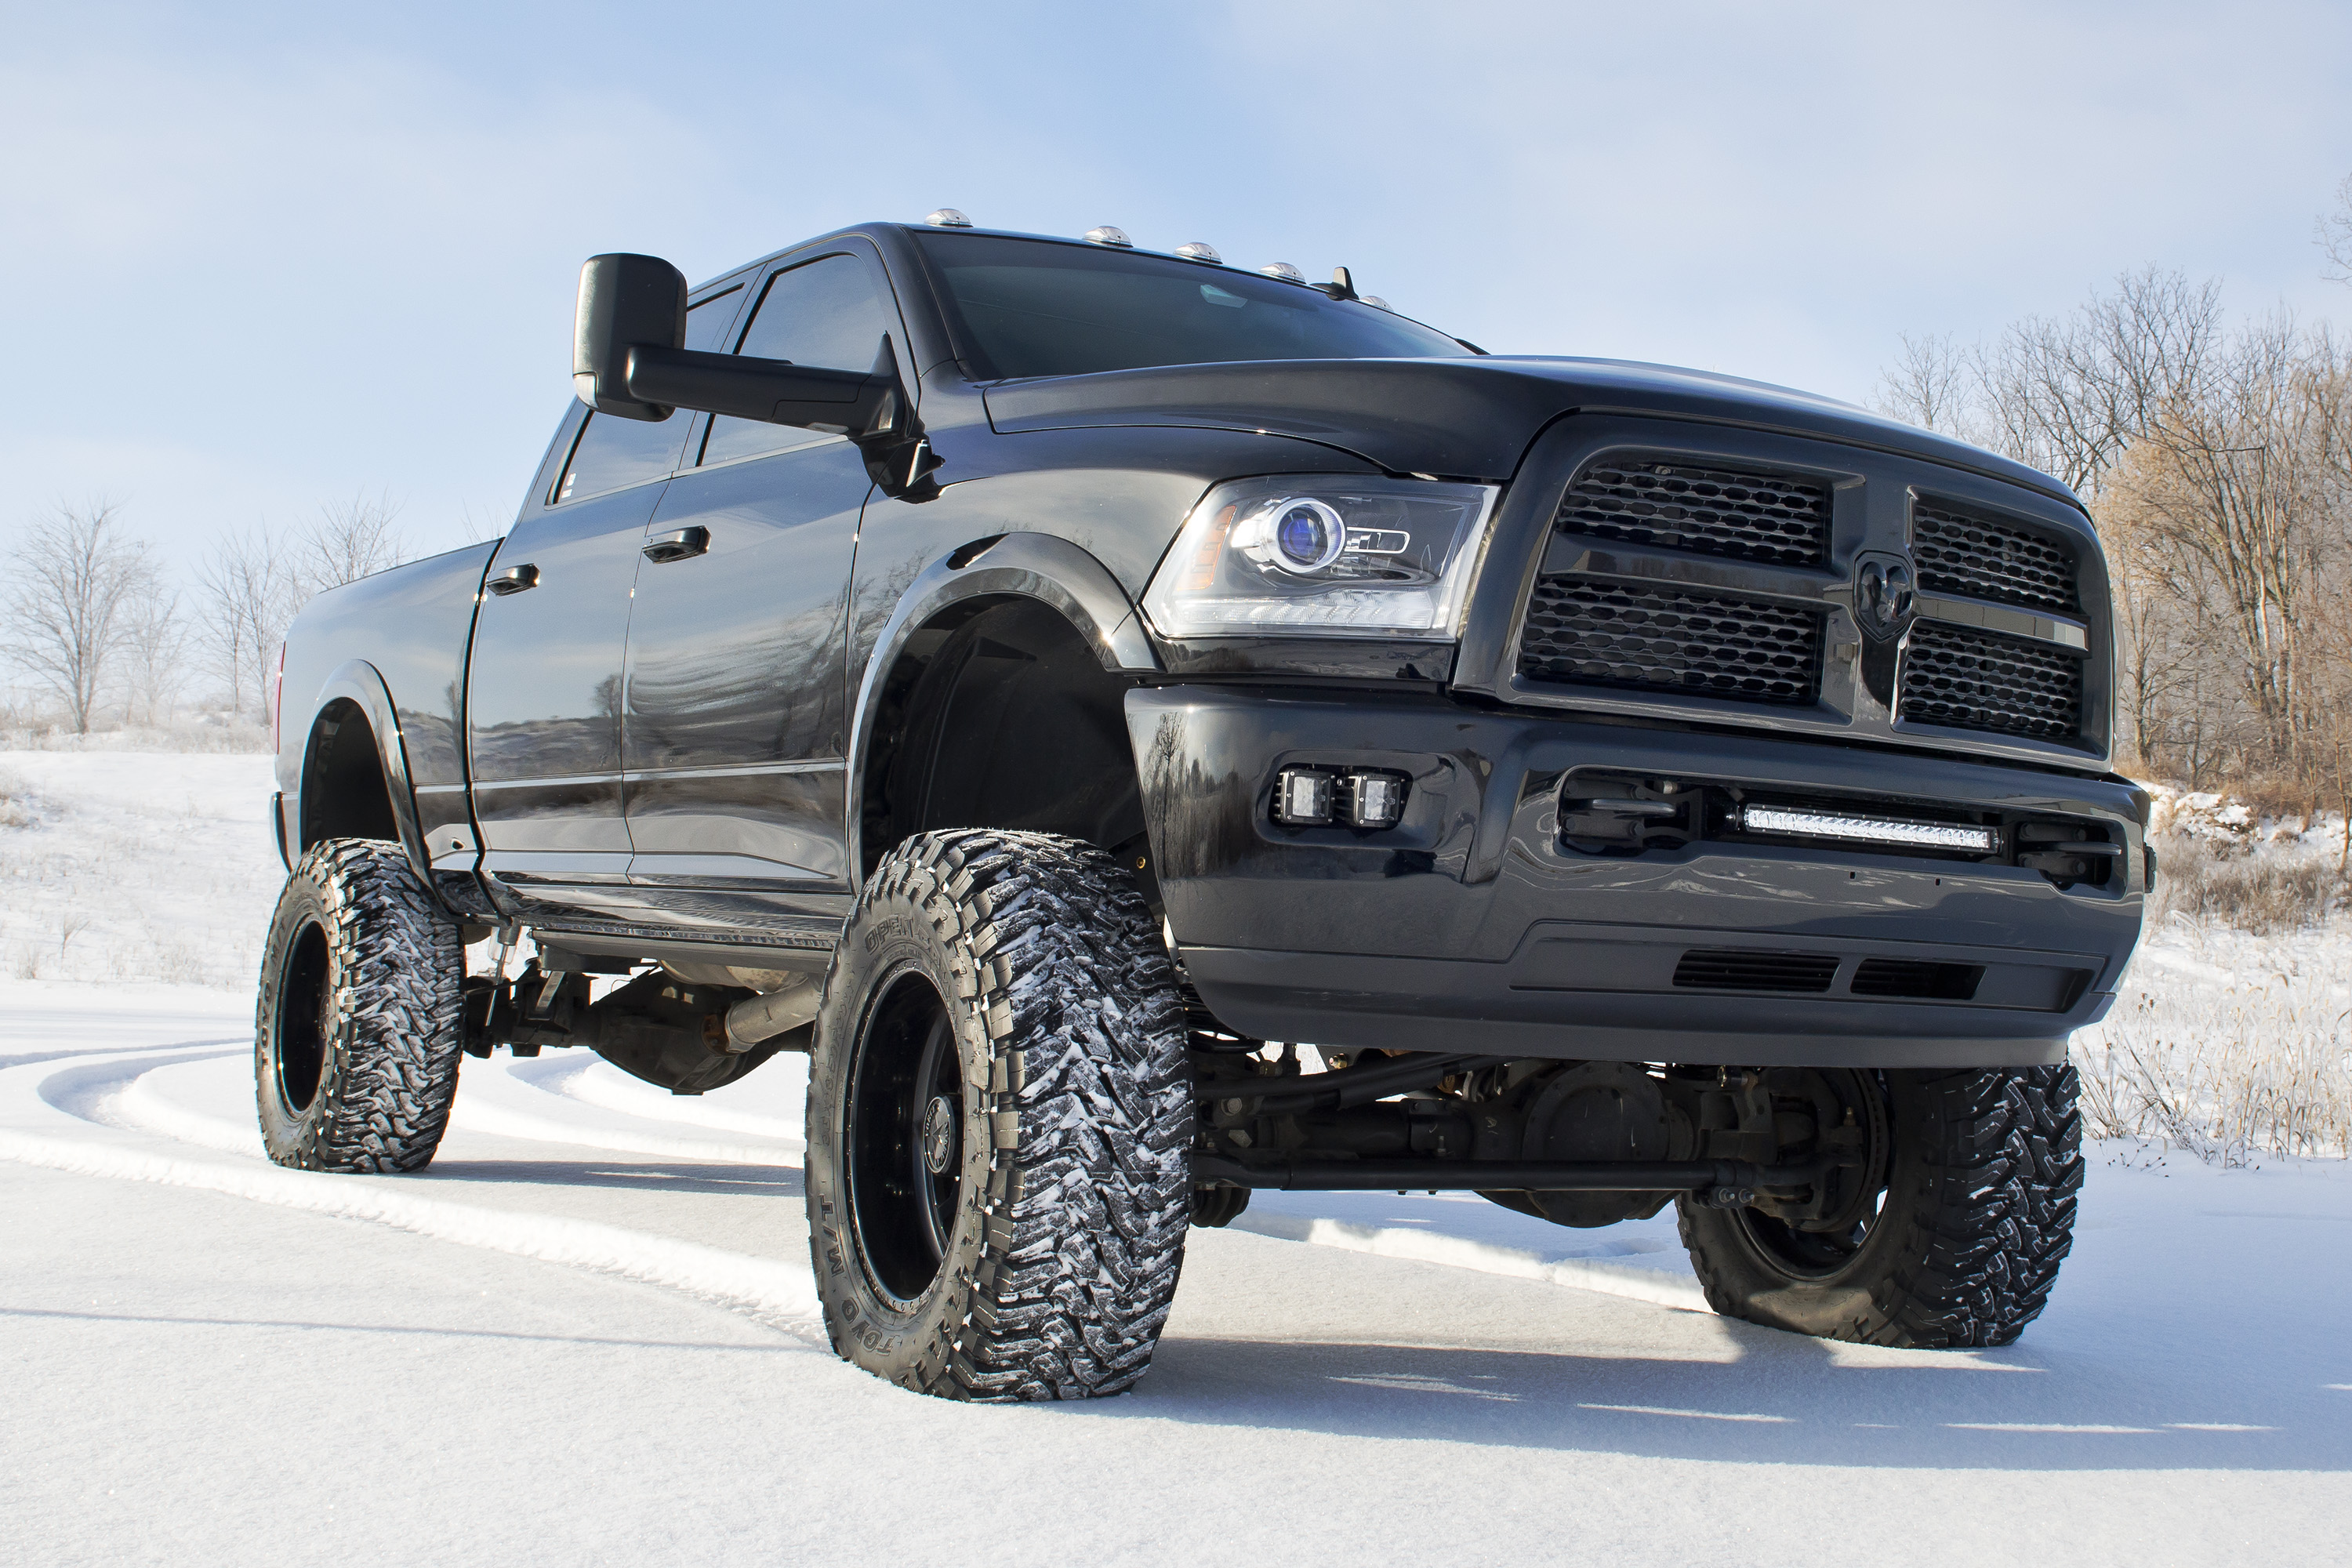 2015 ram 2500 - Dodge Truck 2015 Lifted